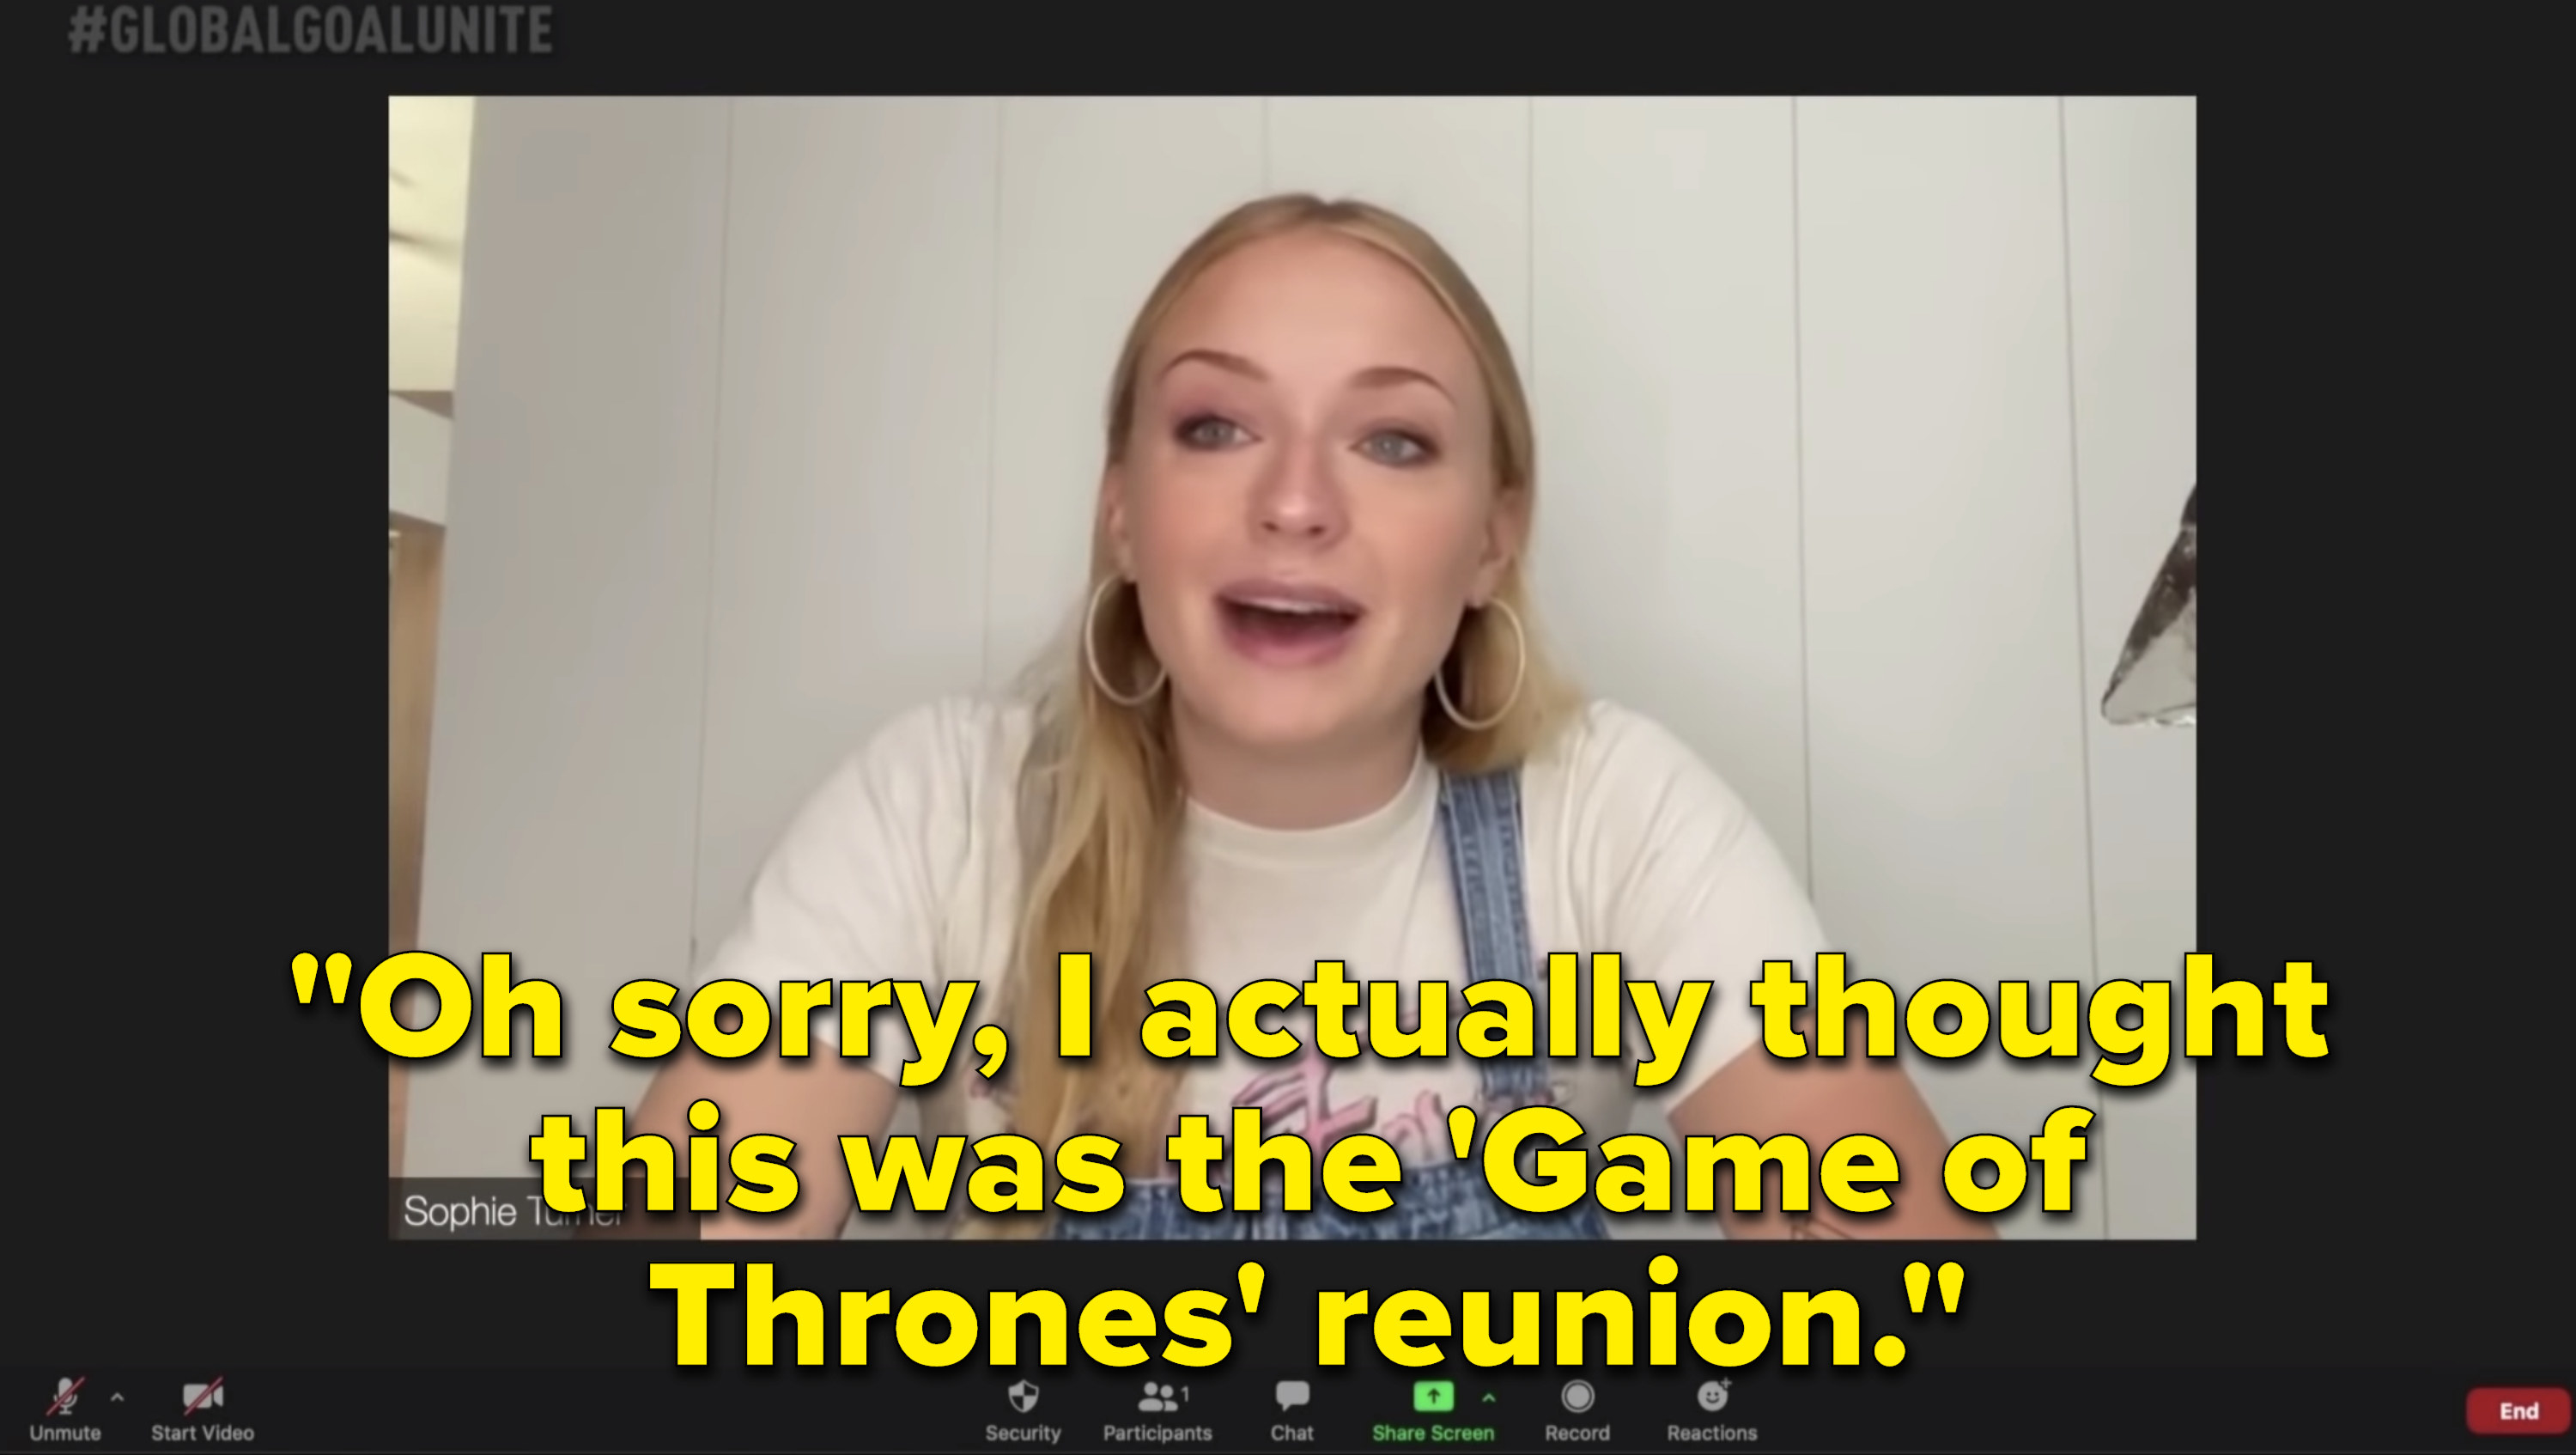 """Sophie Turner saying """"Oh sorry, I actually thought this was the 'Game of Thrones' reunion."""""""